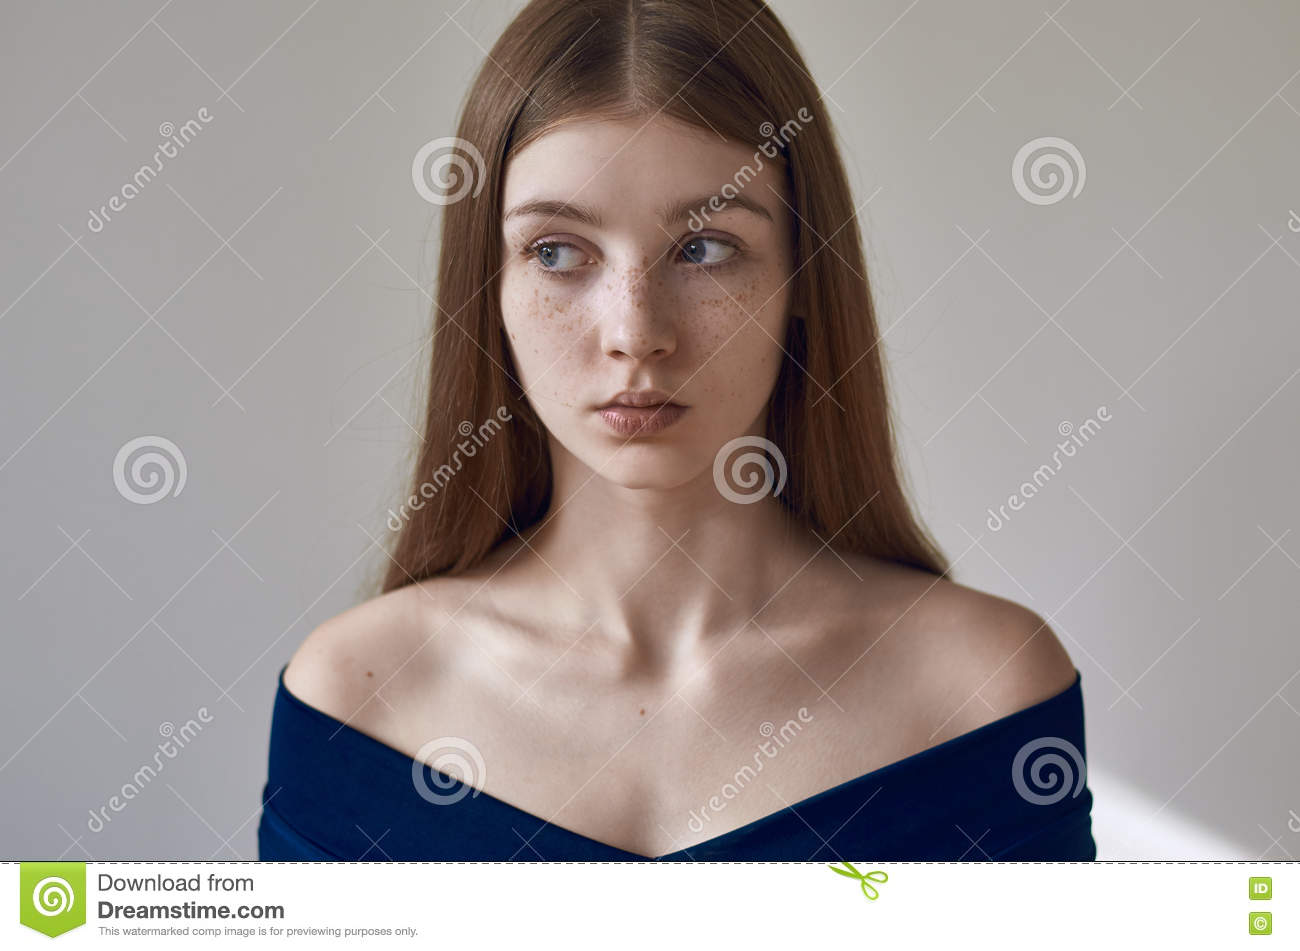 Beauty theme: portrait of a beautiful young girl with freckles on her face and wearing a blue dress on a white background in